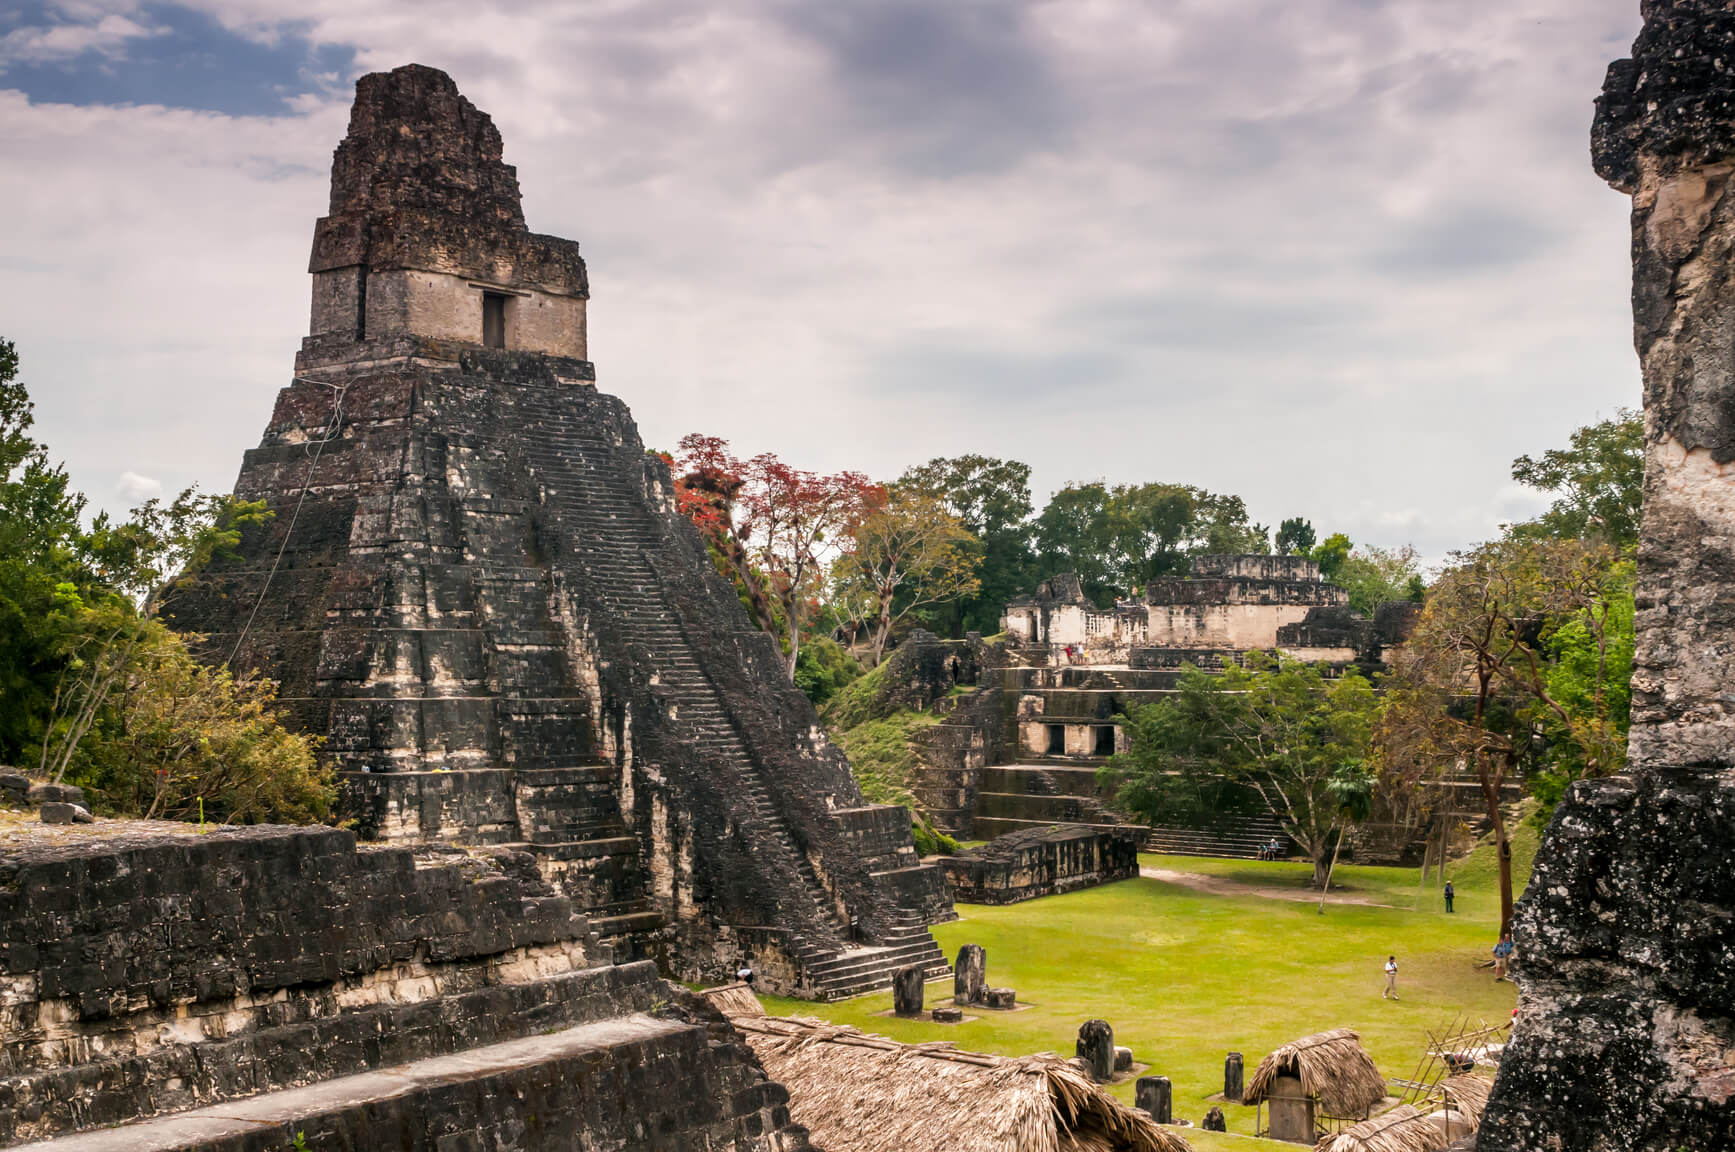 Montreal, Canada to Guatemala City, Guatemala for only $399 CAD roundtrip